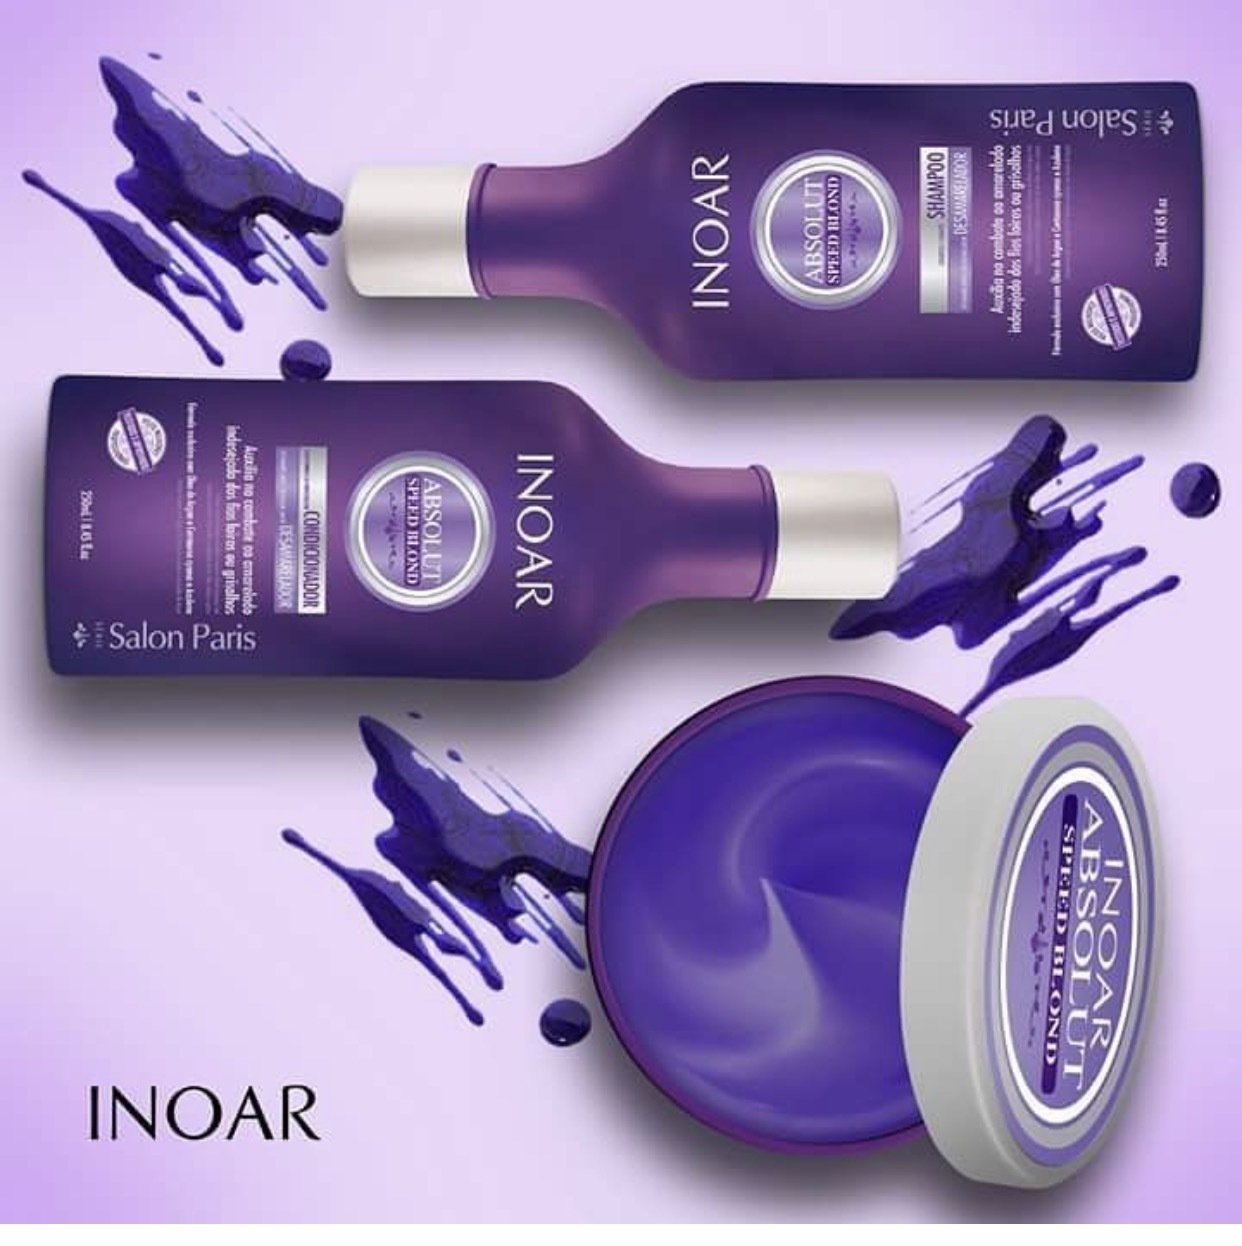 INOAR -DEEP  ABSOLUTE SPEED BLOND TREATMENT  SET